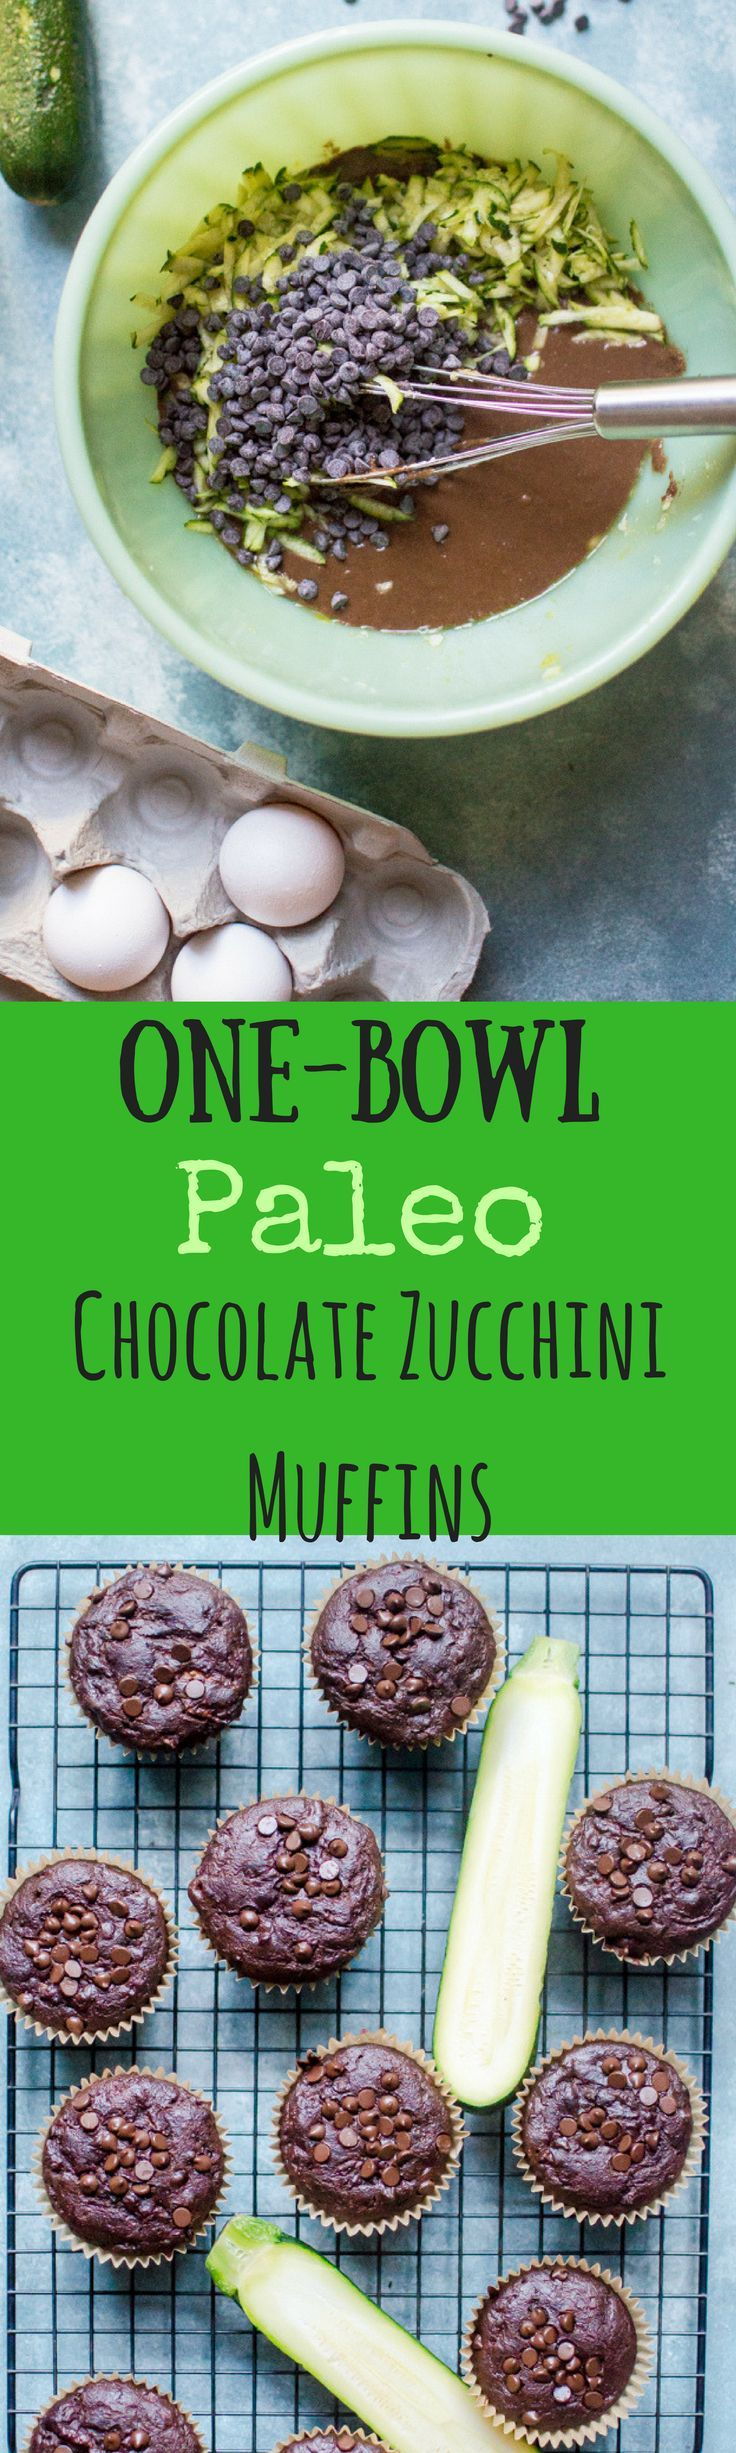 These healthy muffins are so amazing, easy and delicious, you wouldn't know they are Paleo AND have zucchini hiding inside them!   Gluten free, dairy-free, grain-free